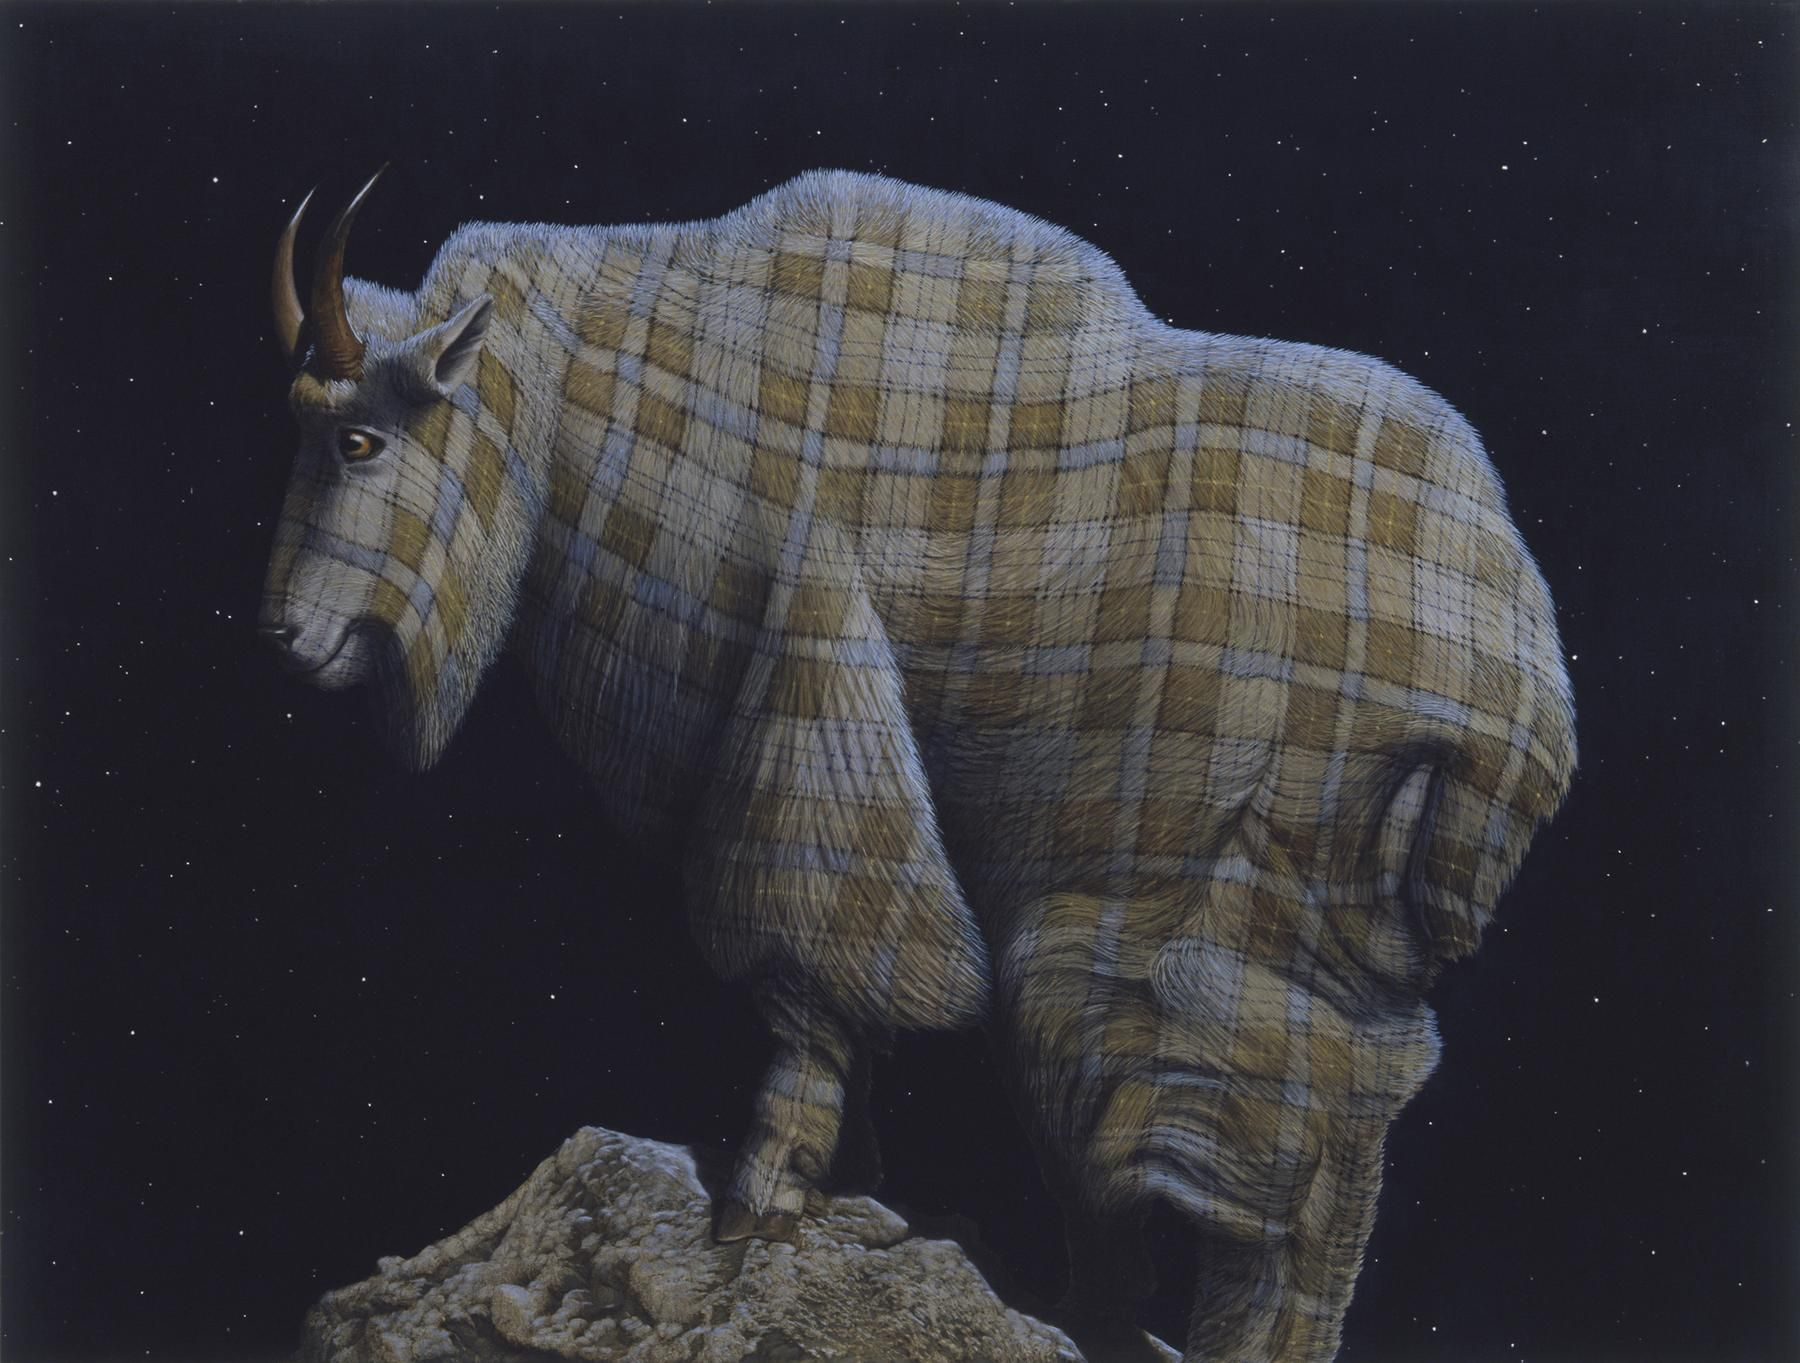 Sean Landers An Argument for Solipsism (Mountain Goat)